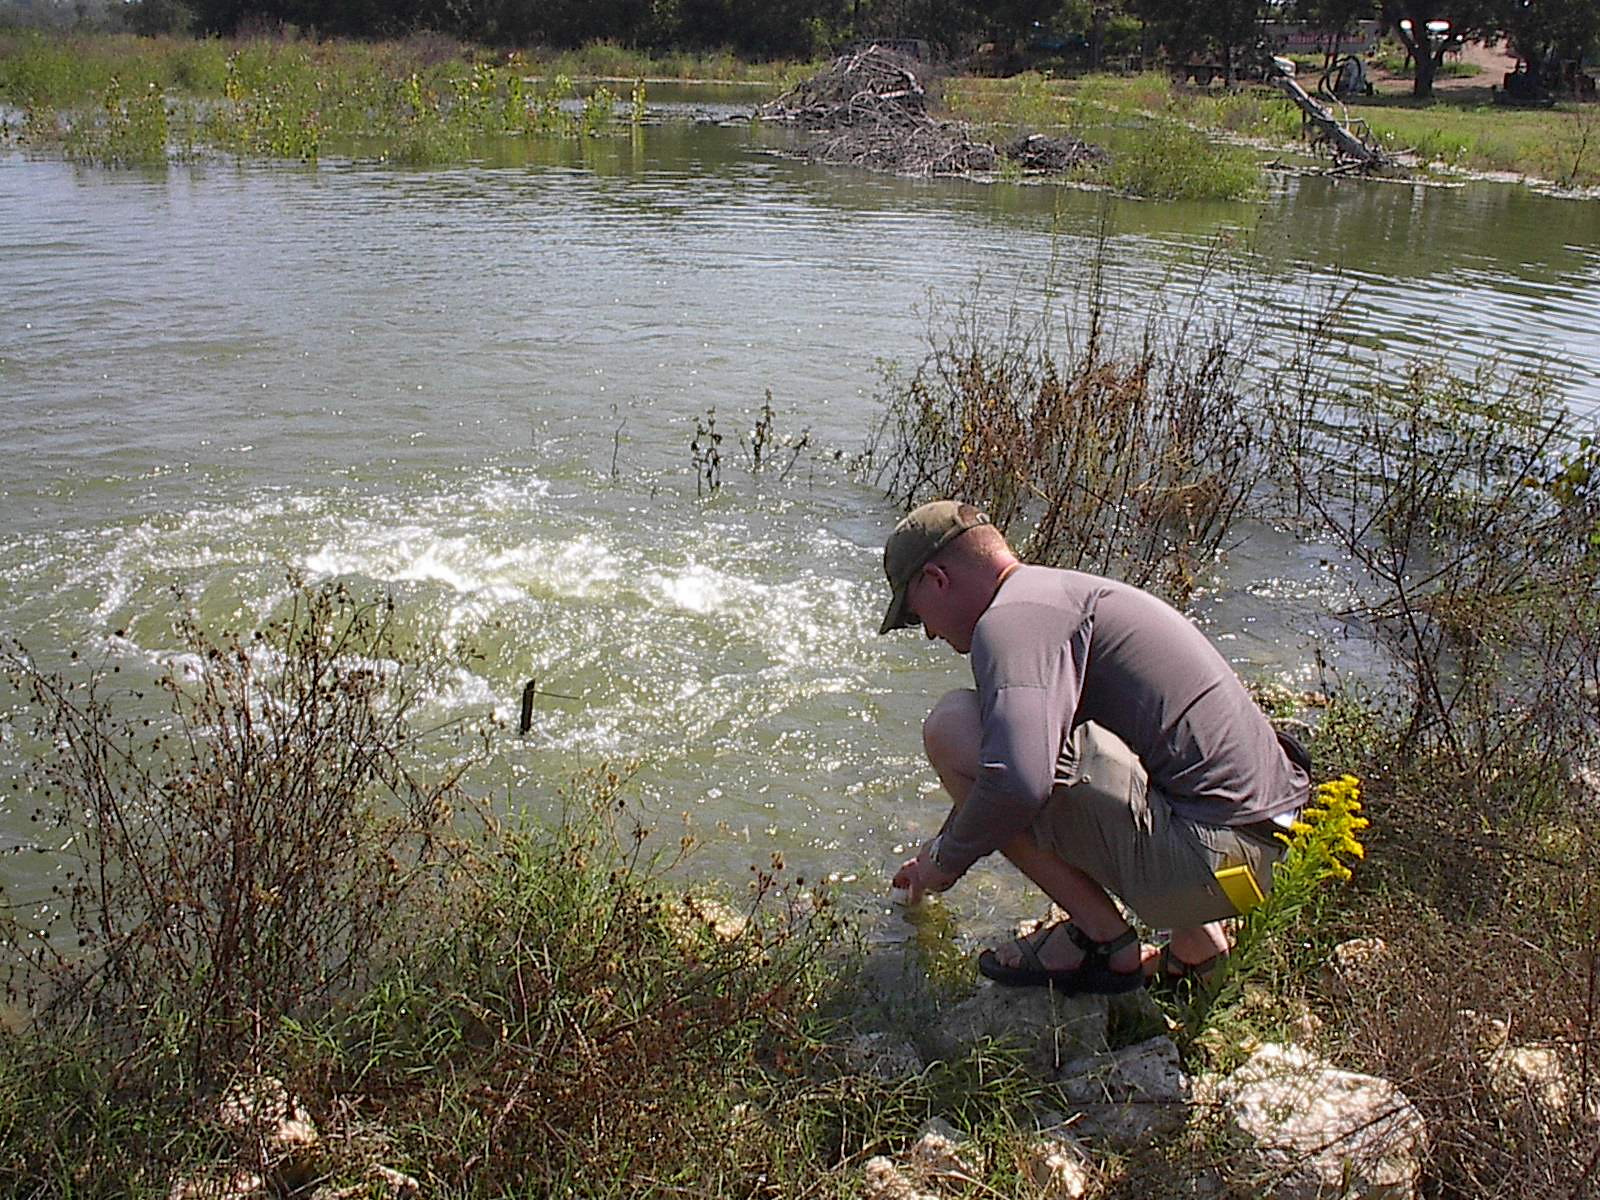 Jeremy Andrews taking a water sample from a Waco infill pipe.